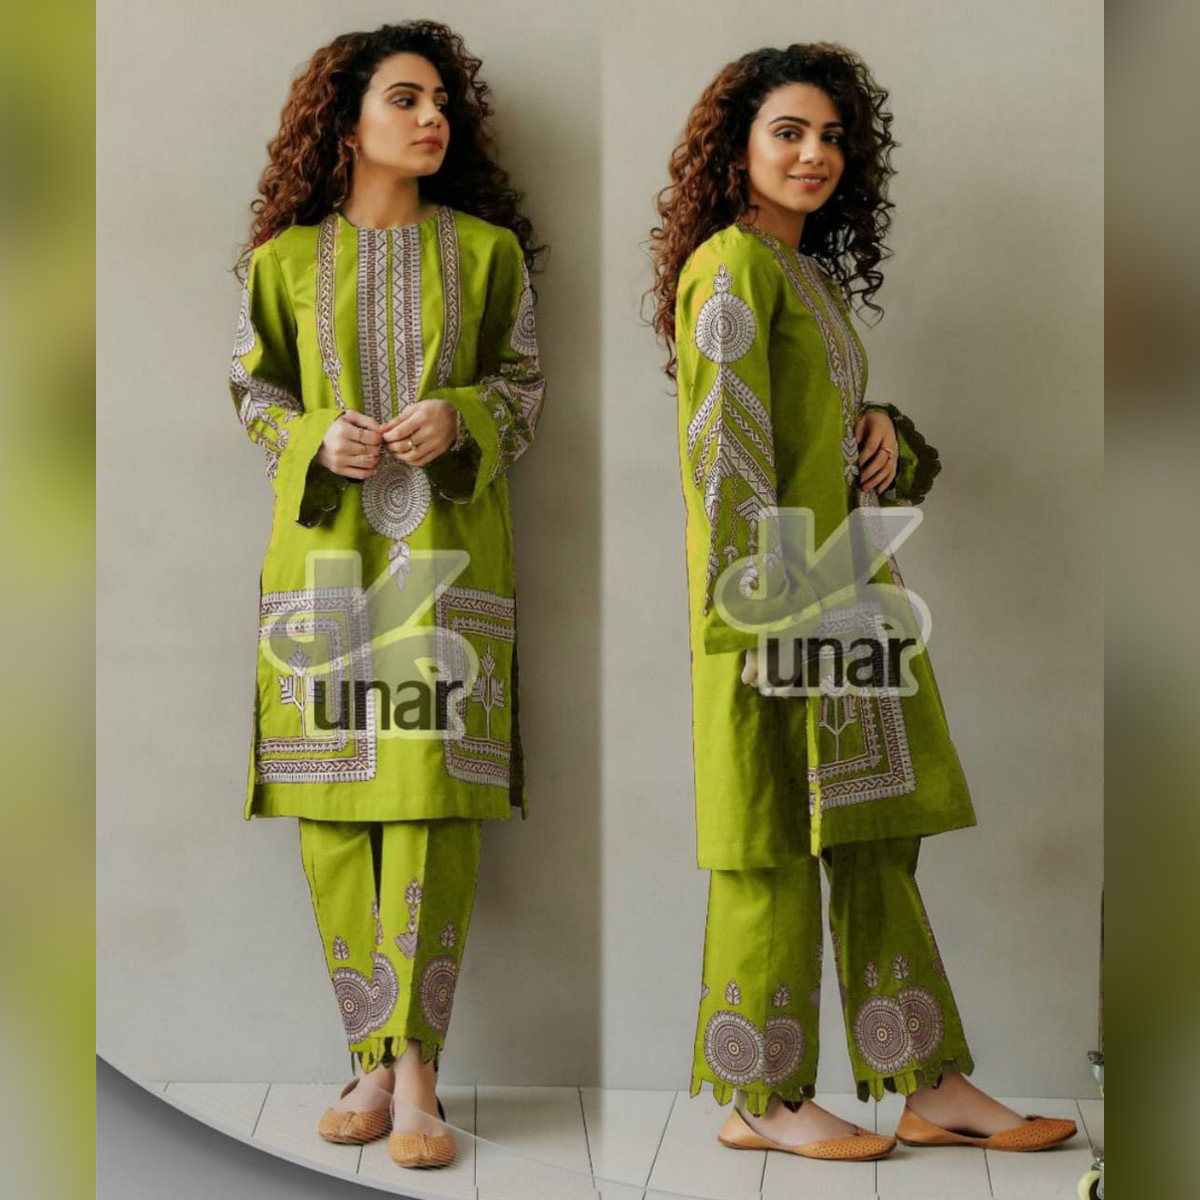 WPM Designer Embroidered Summer Suit (2 PCs) Kurta Shalwer for Women / Girls / Ladies (Bring your Style / Be in your Style - Party Fashion / Latest Summer Collection 2021) Ready to wear / Readymade (Limited Stock / Limited Time Offer Sale) Mid Year Sale